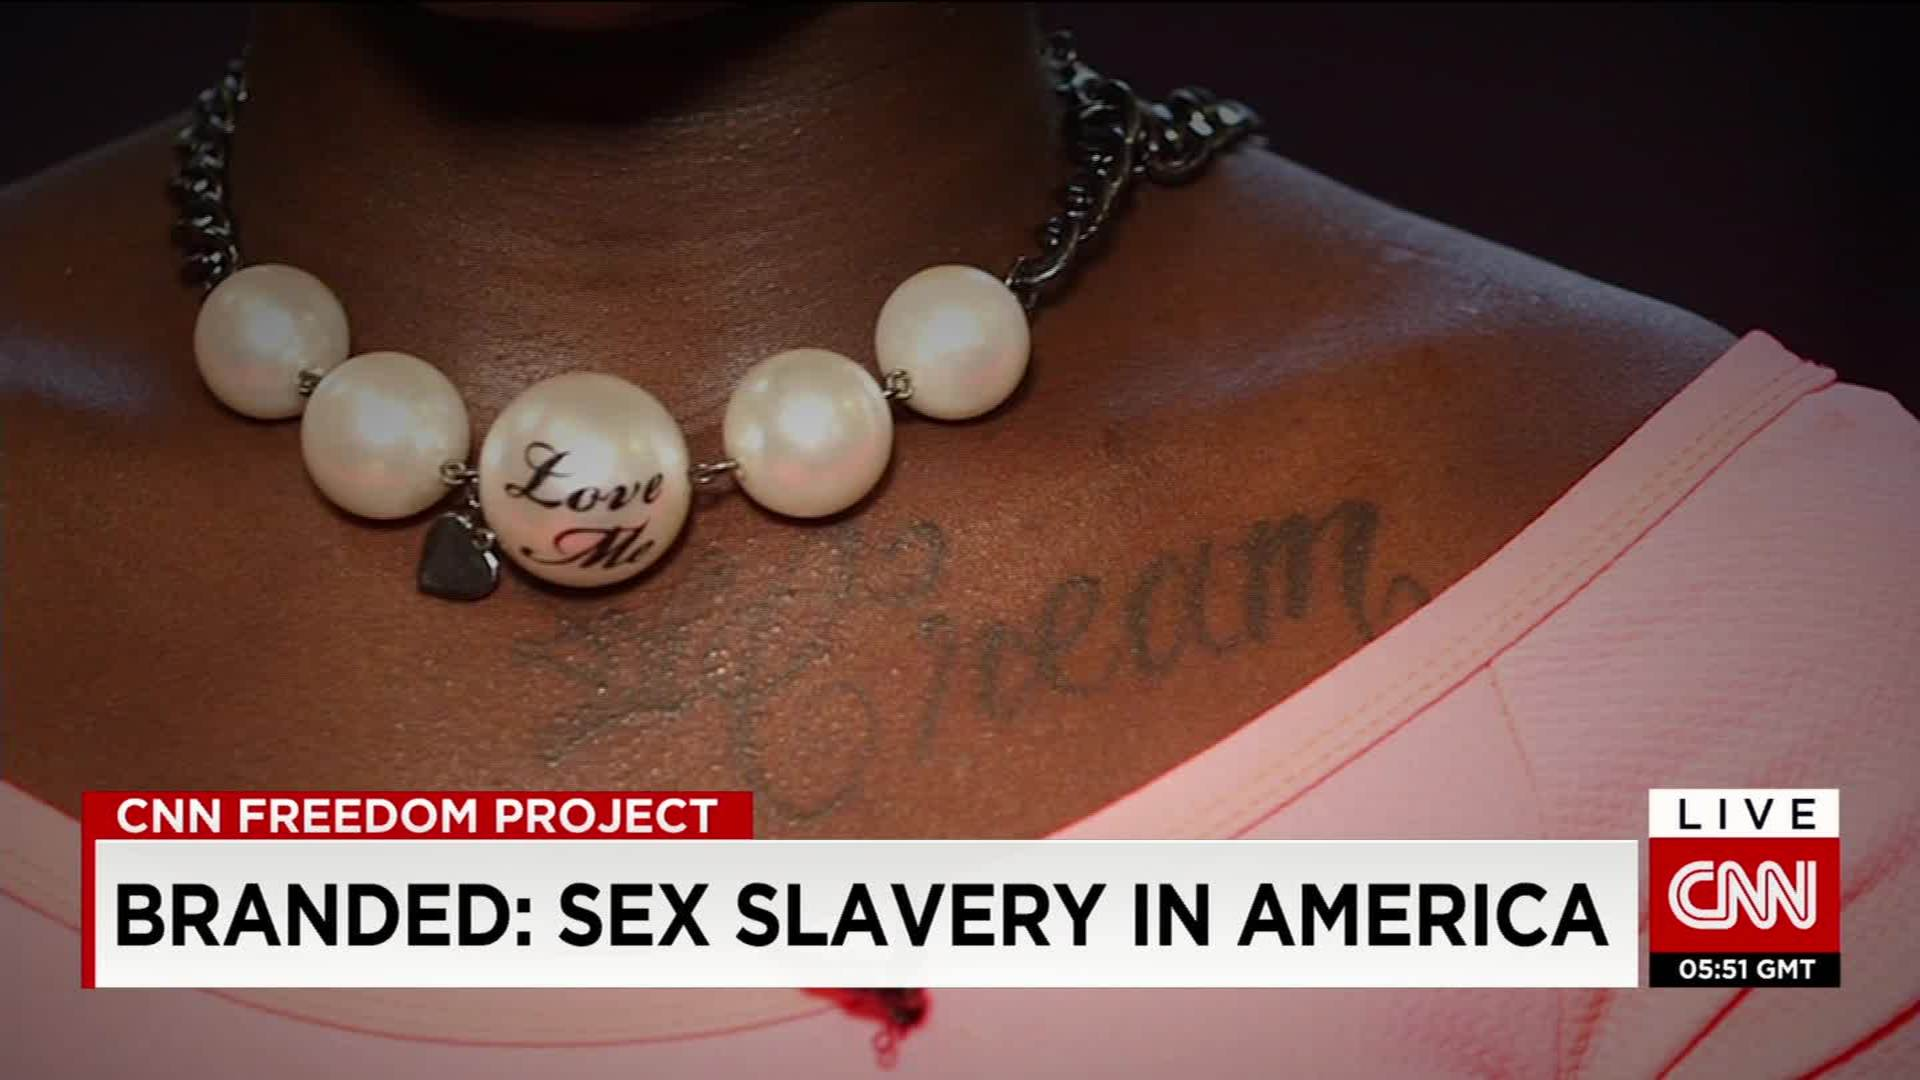 17-year-old says she was branded by her pimp - CNN Video